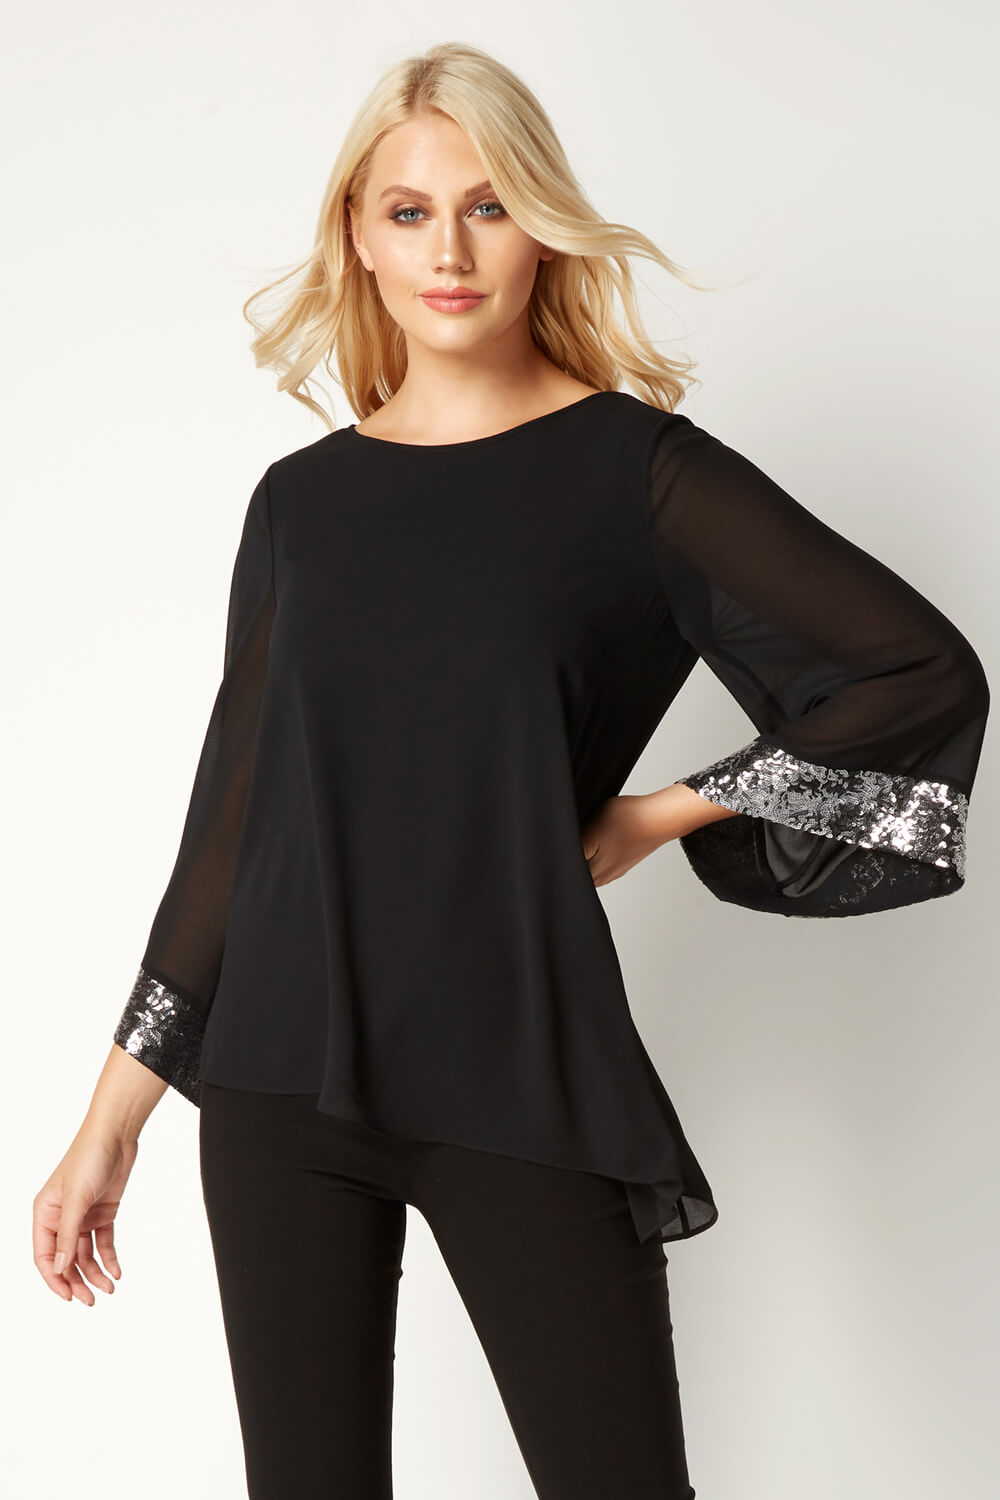 Roman Original Women Asymmetric Overlay Sequin Top in Black sizes 10-20